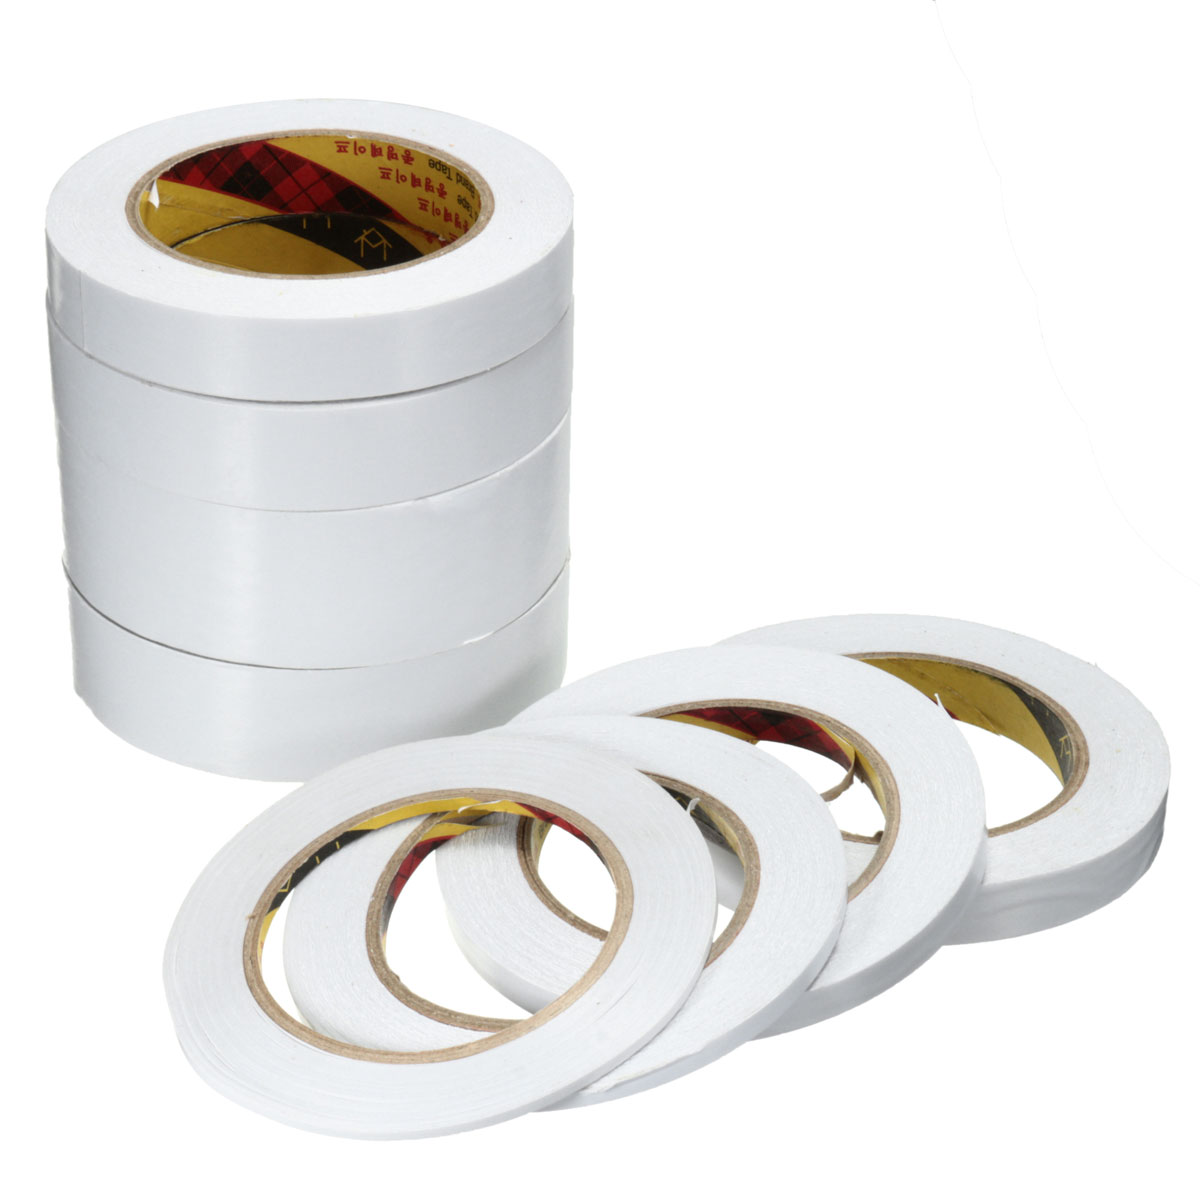 25m white double sided tape roll strong adhesive sticky for Double sided craft tape